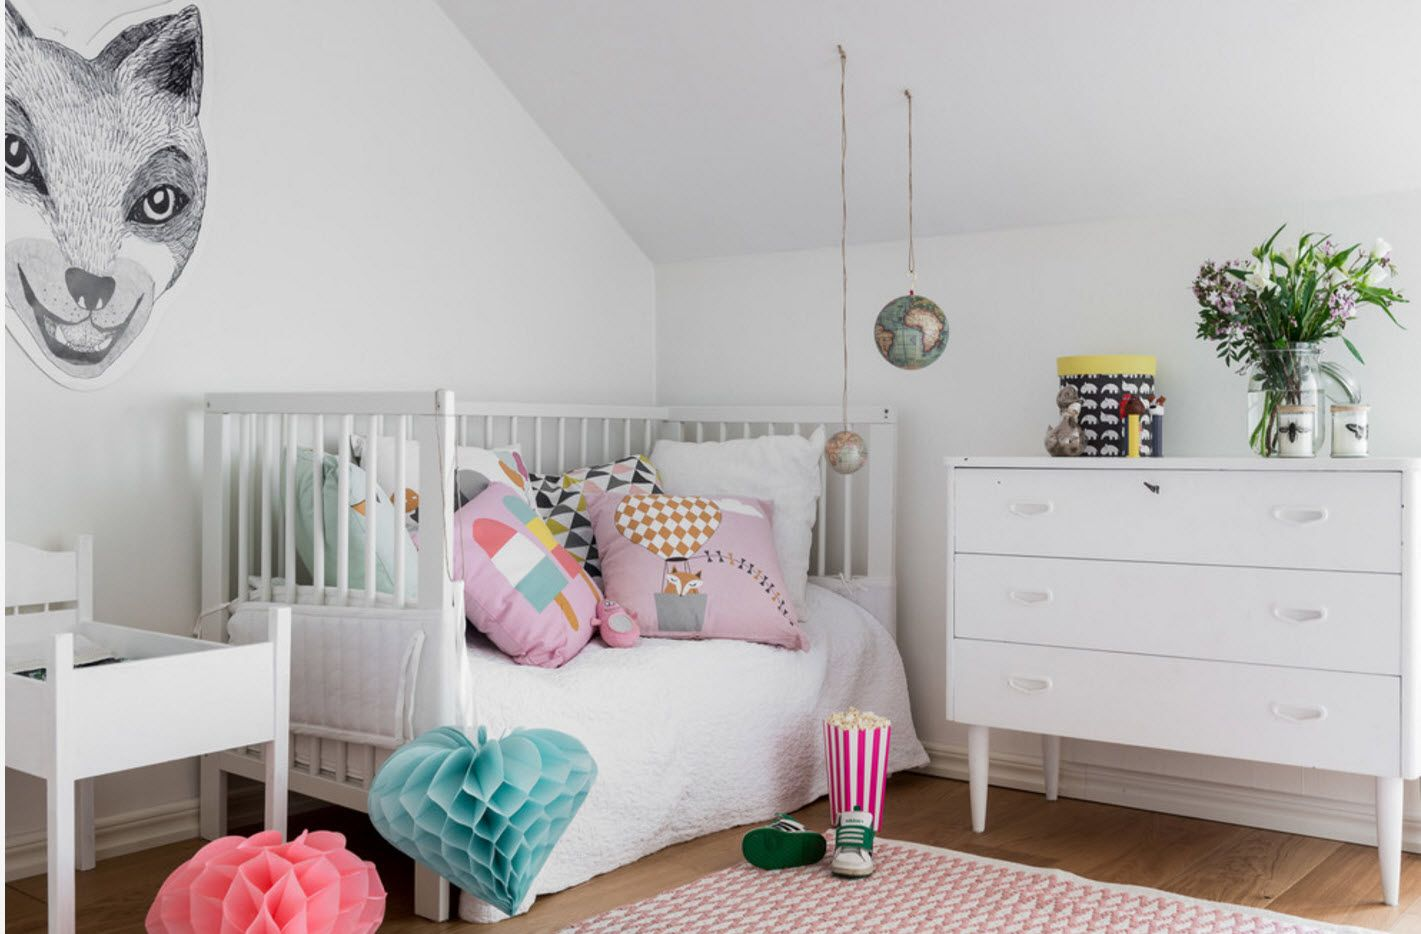 White color palette and colorful toys to dilute the interior